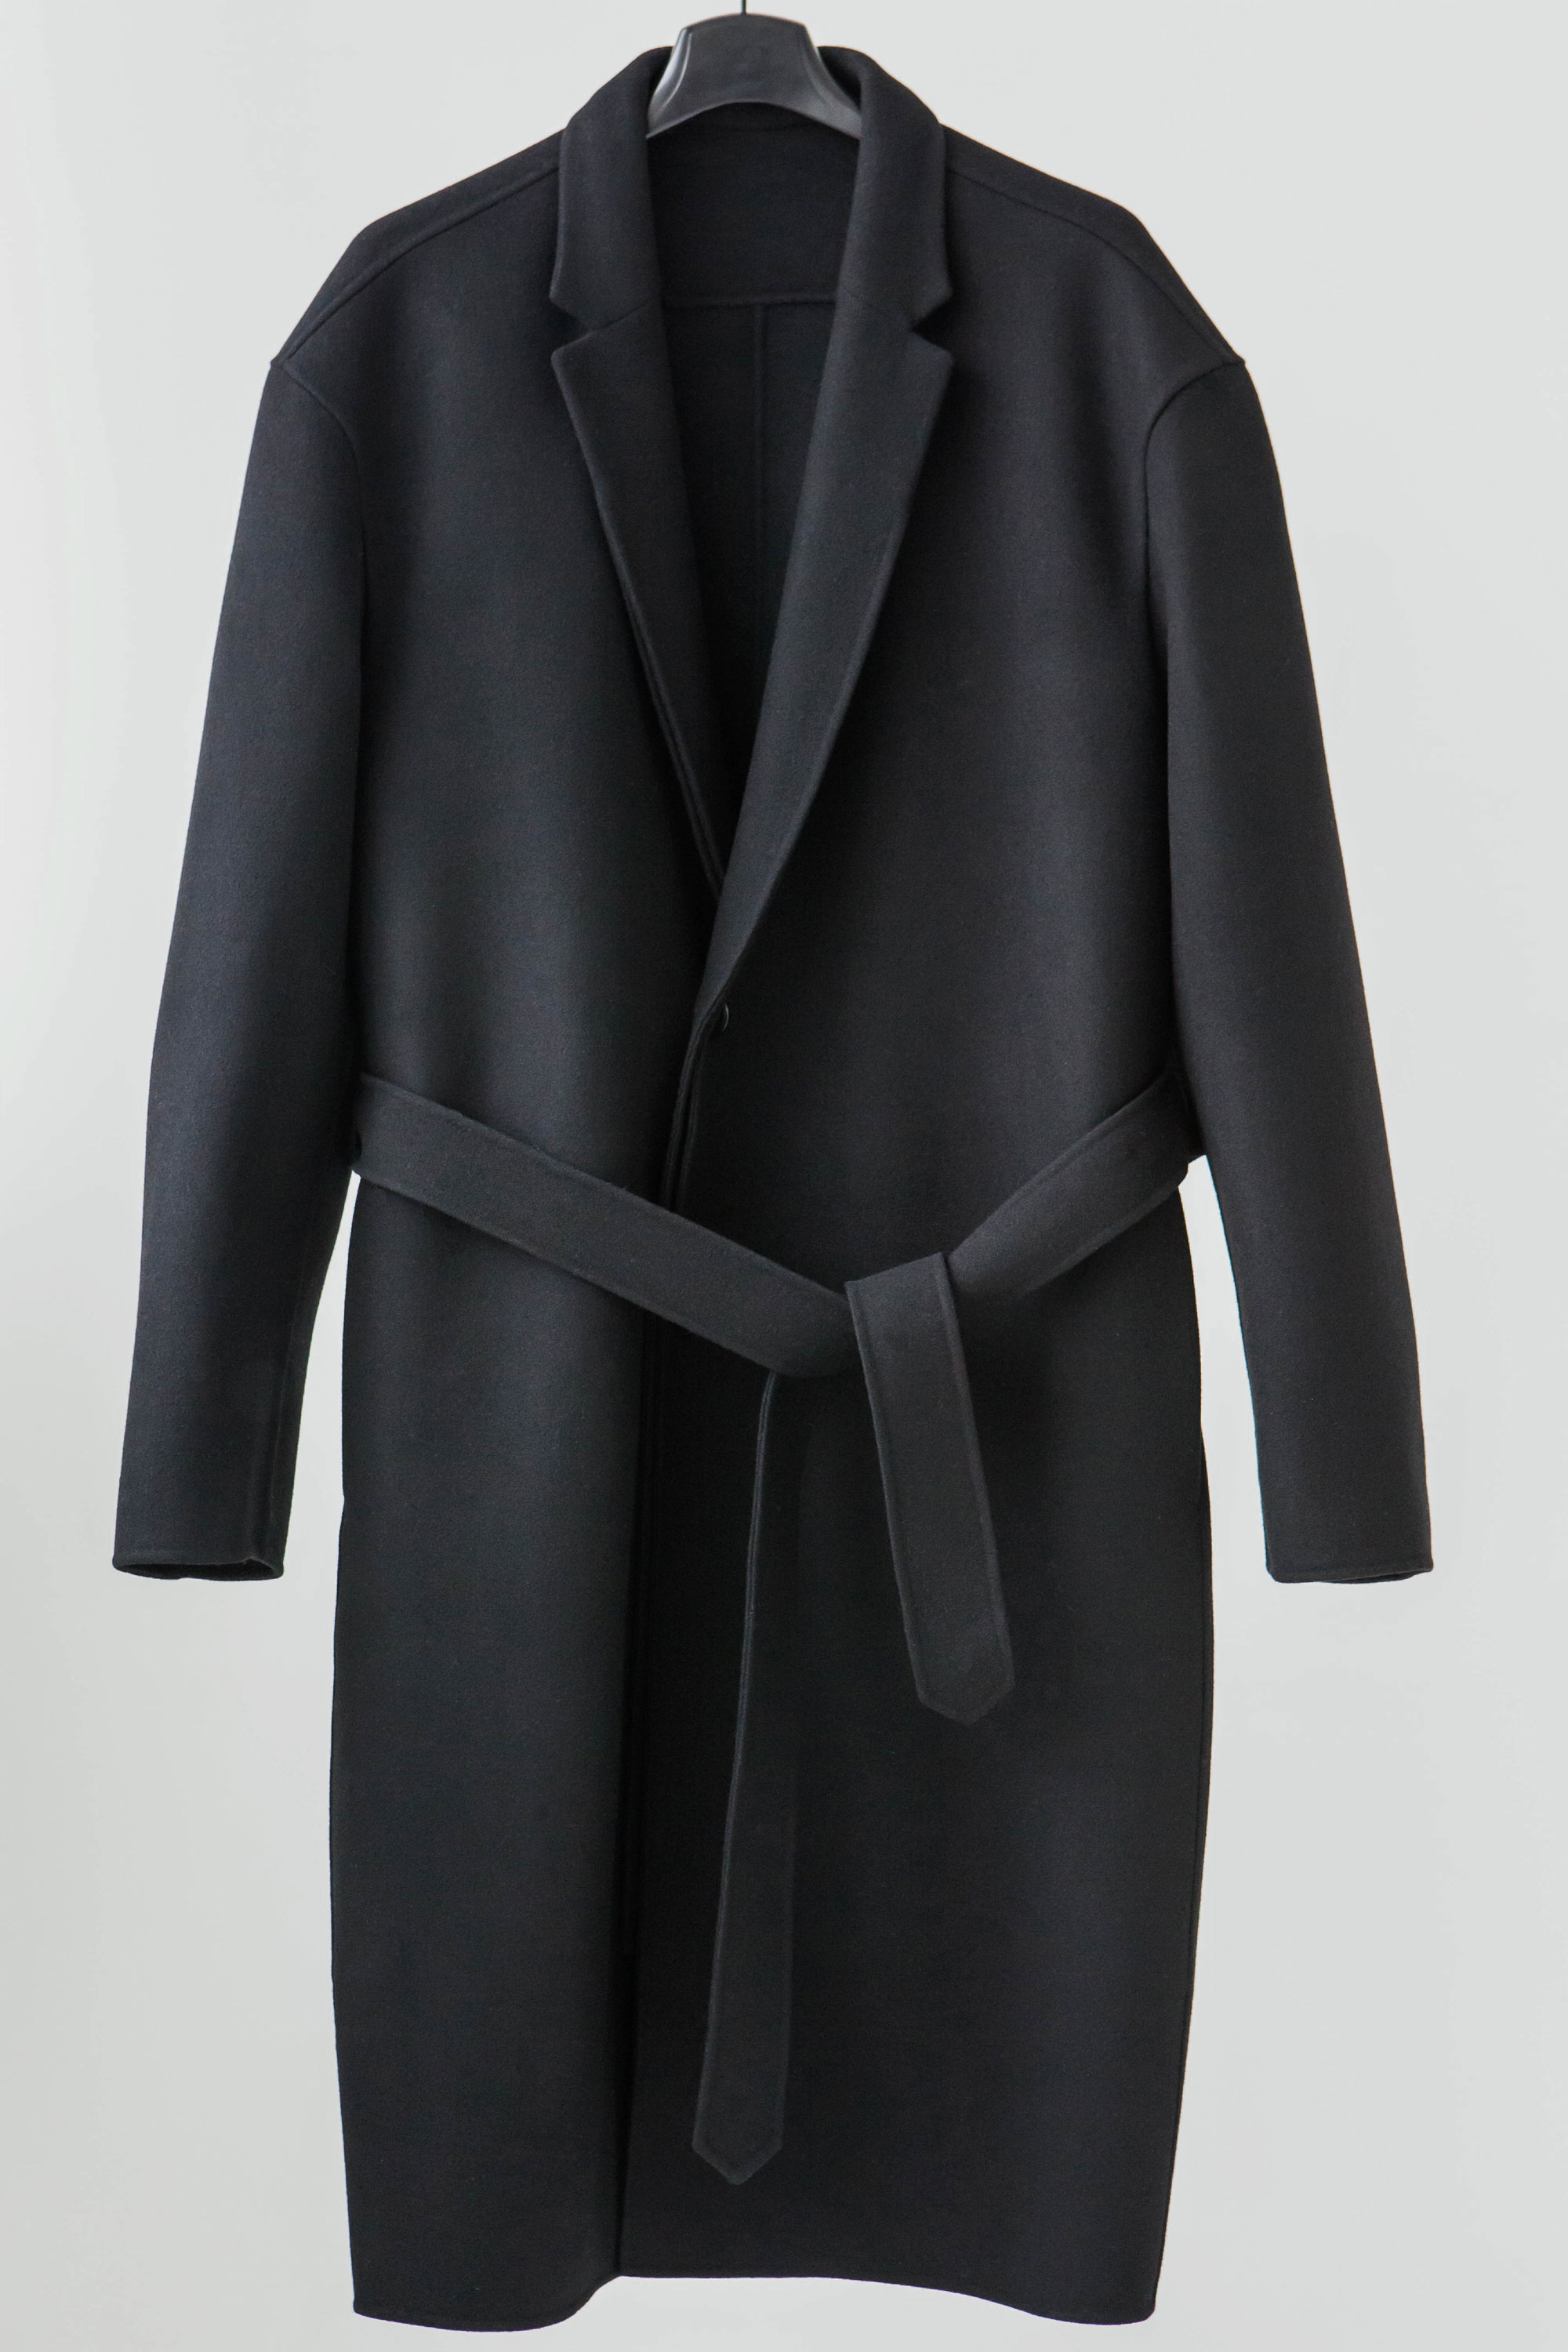 -J- SINGLE OVER-FIT COAT  WOOL94% CASHERE5% PU1%